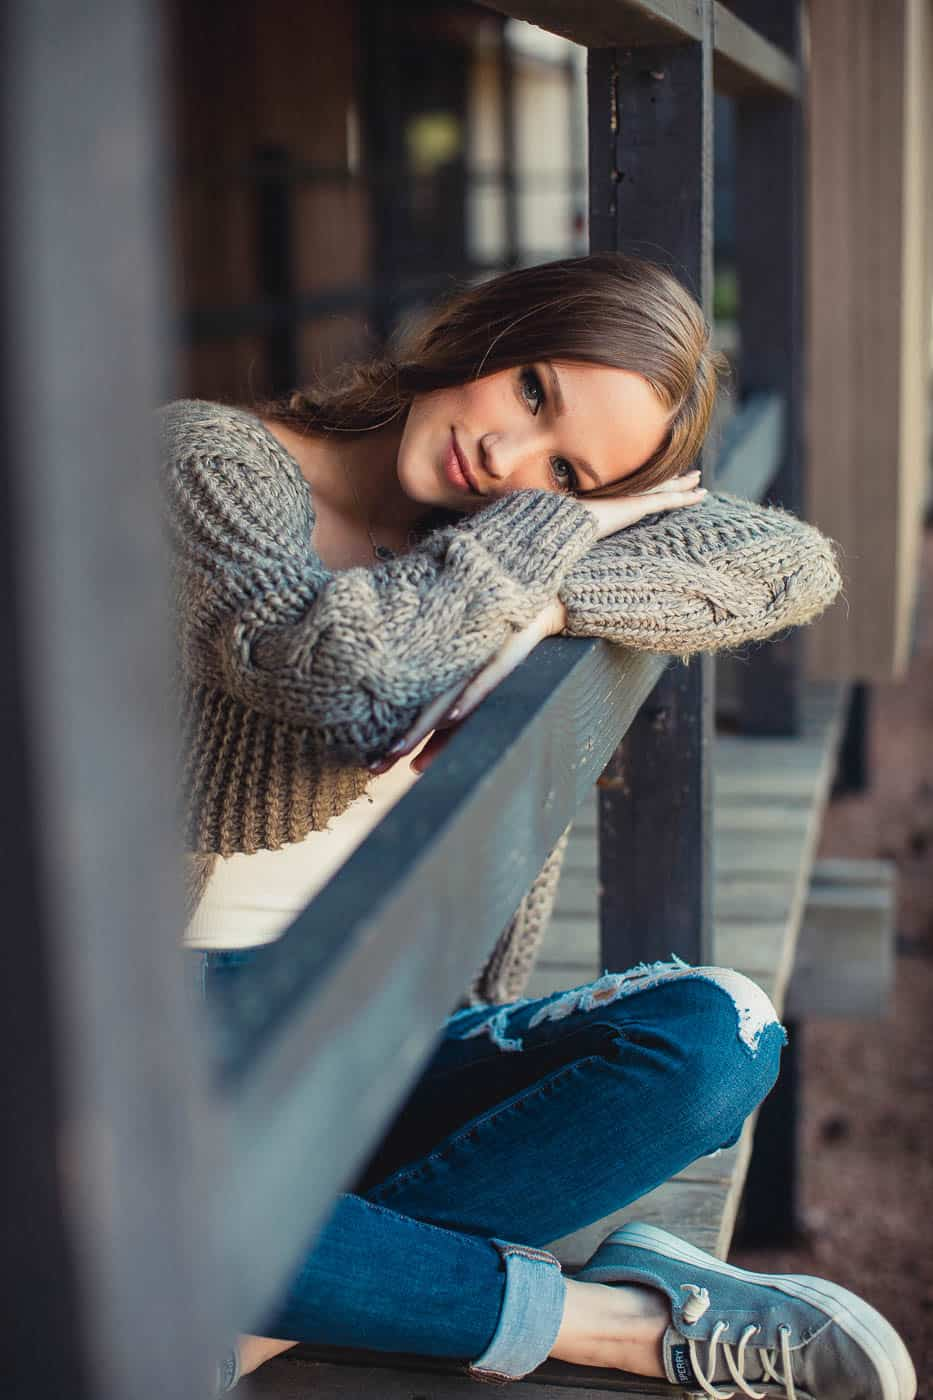 Relaxed and fun portraits